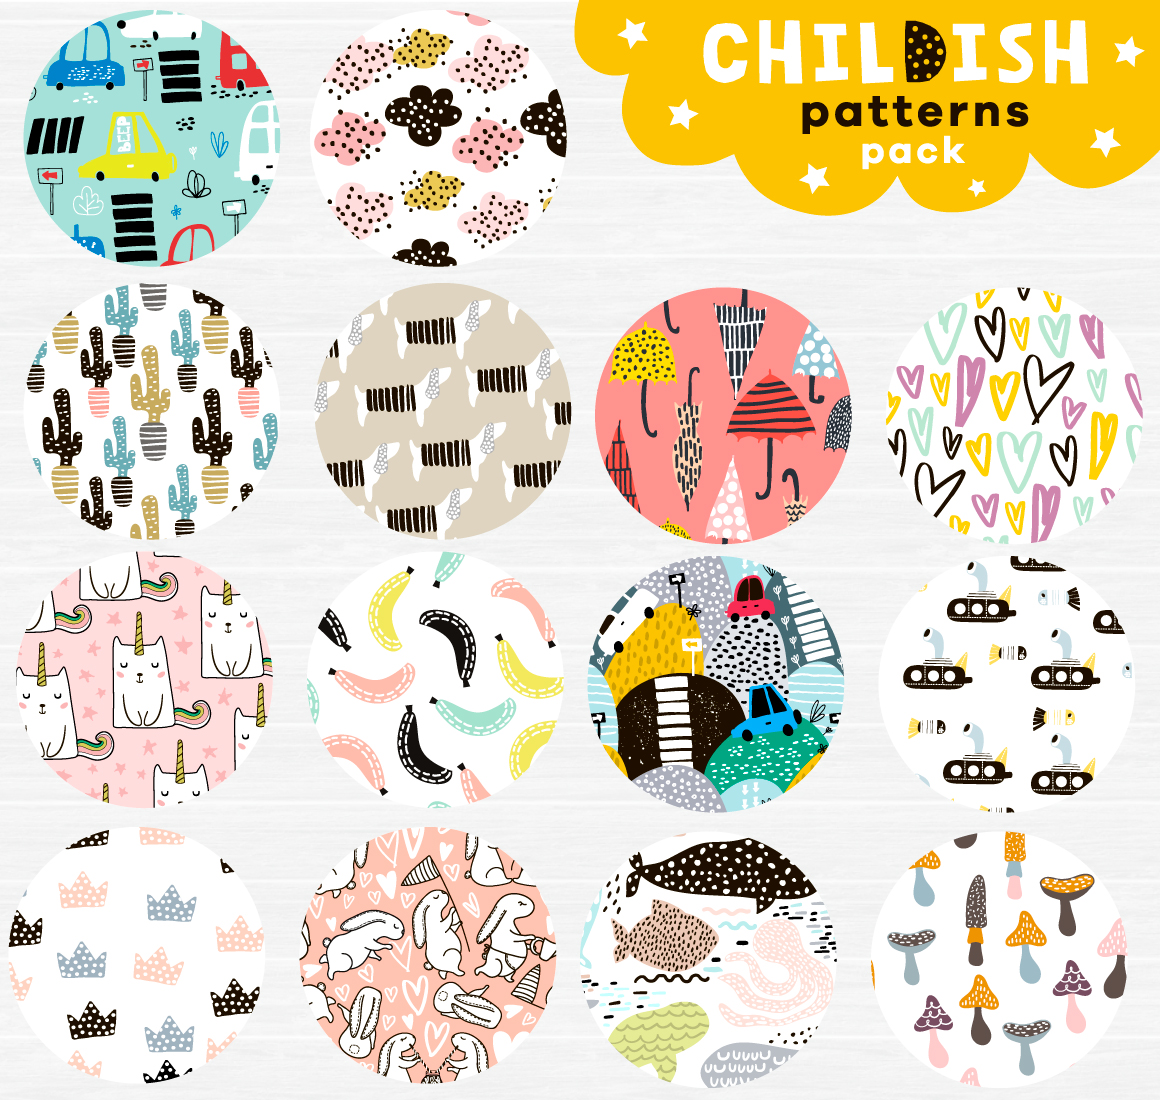 Childish patterns pack vol. 2 example image 6